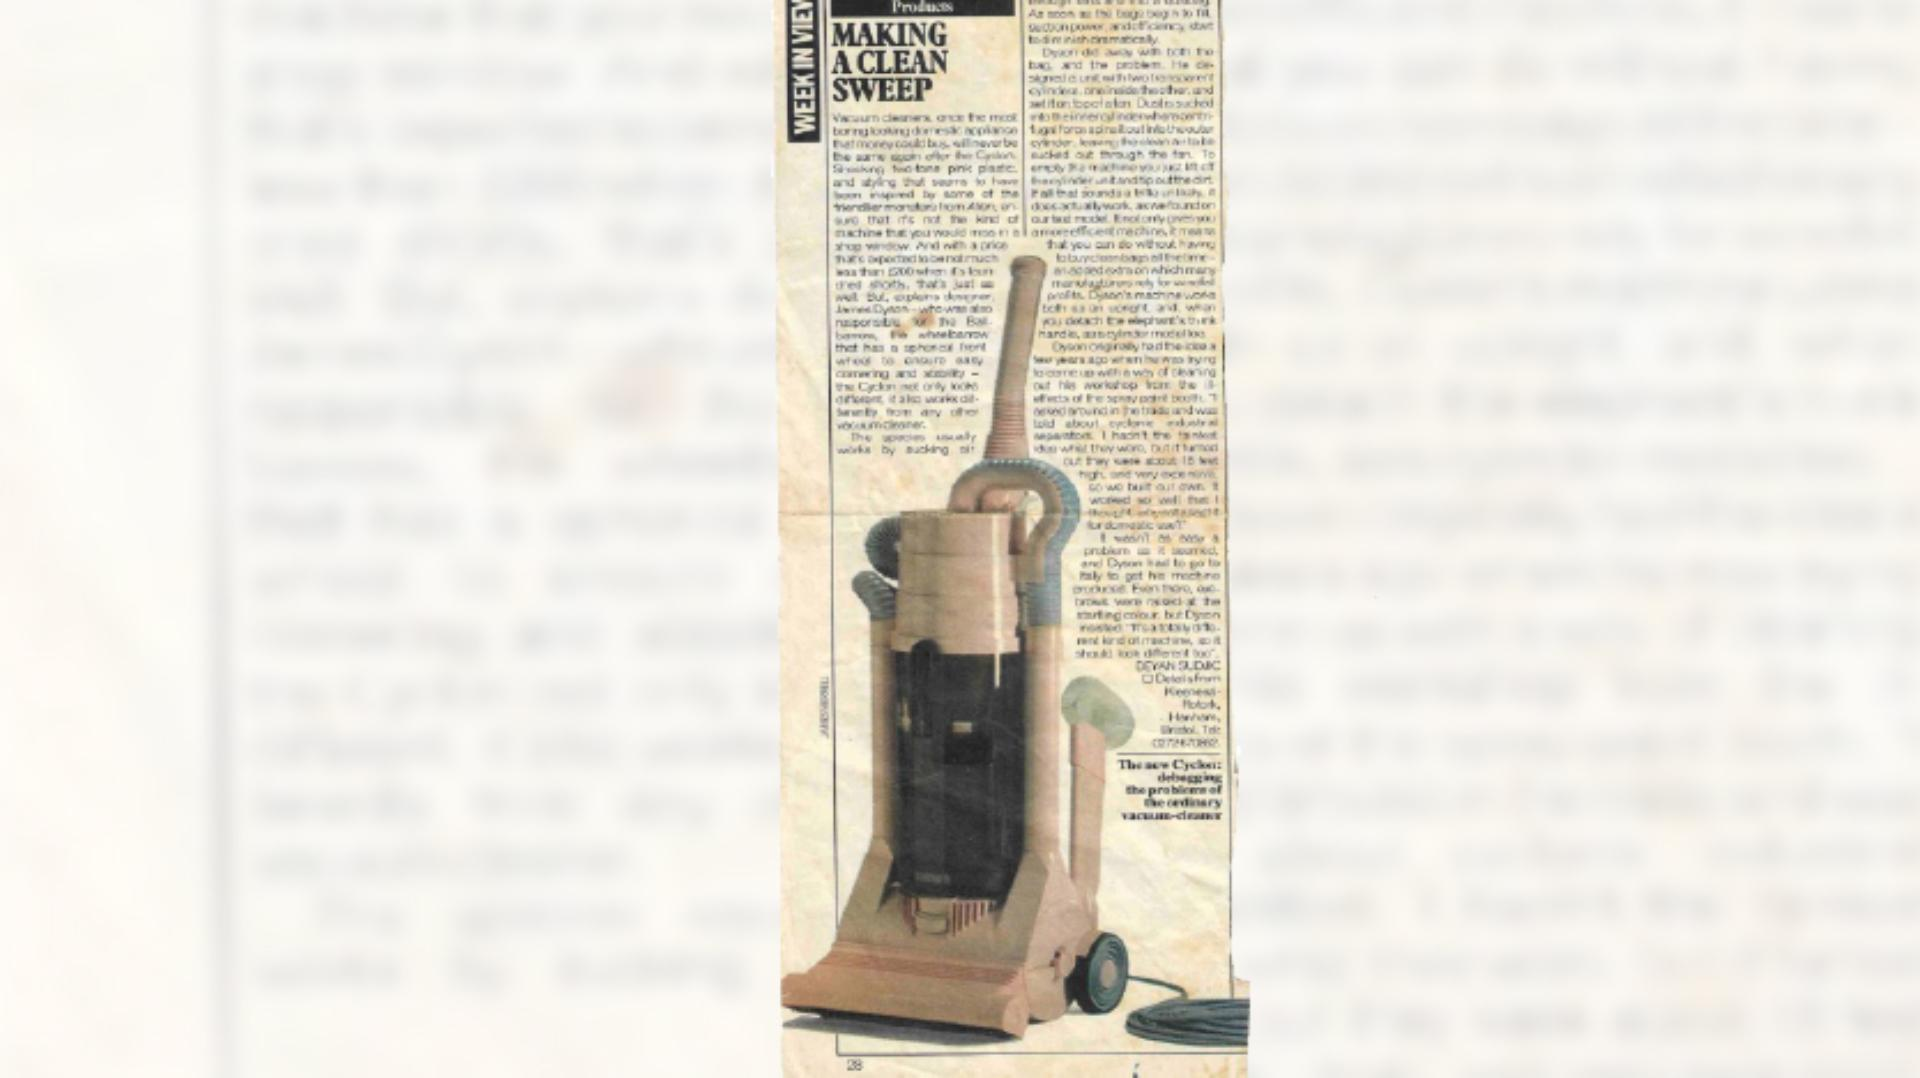 Press clipping with a review of the Kleeneze Rotork Cyclon